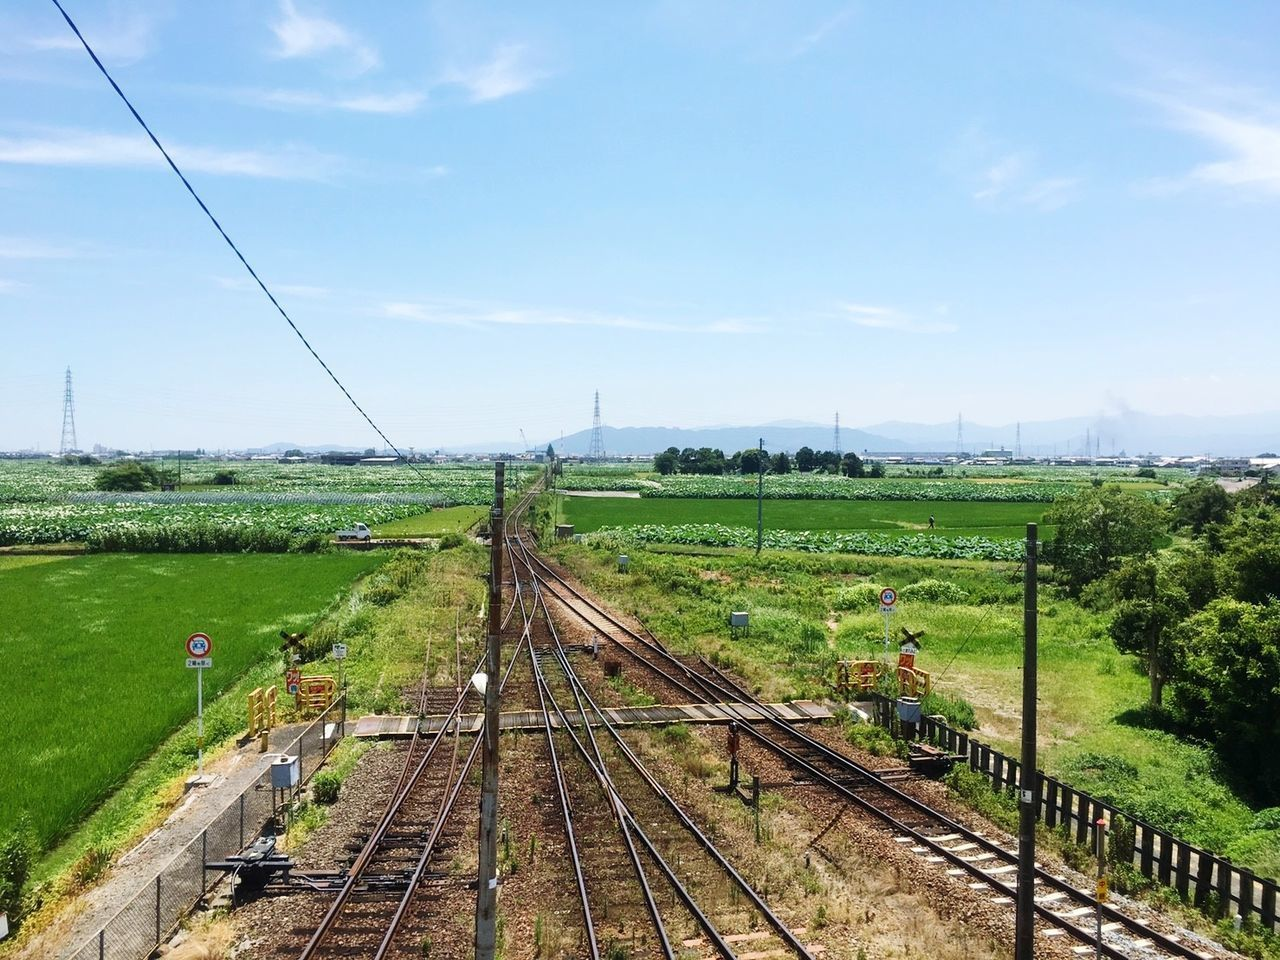 railroad track, rail transportation, transportation, high angle view, sky, day, landscape, scenics, tranquil scene, no people, public transportation, cable, field, tree, outdoors, nature, railway track, train - vehicle, grass, green color, tranquility, beauty in nature